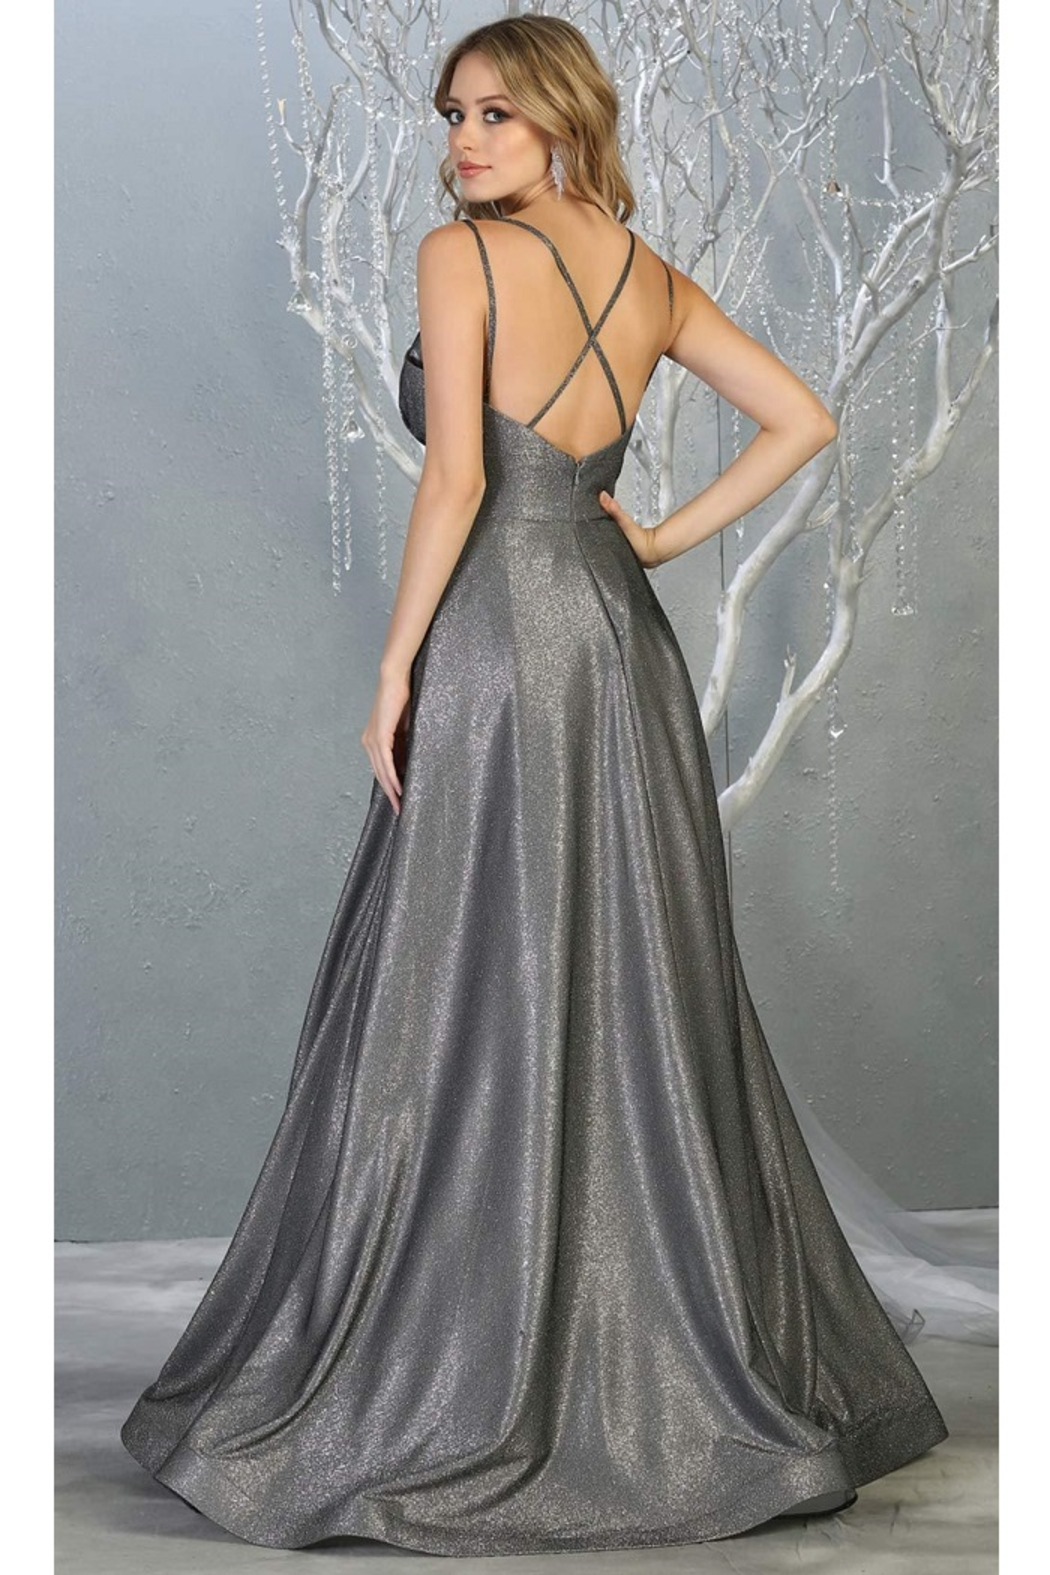 May Queen  Charcoal Metallic Ruched A-Line Formal Long Dress - Front Full Image